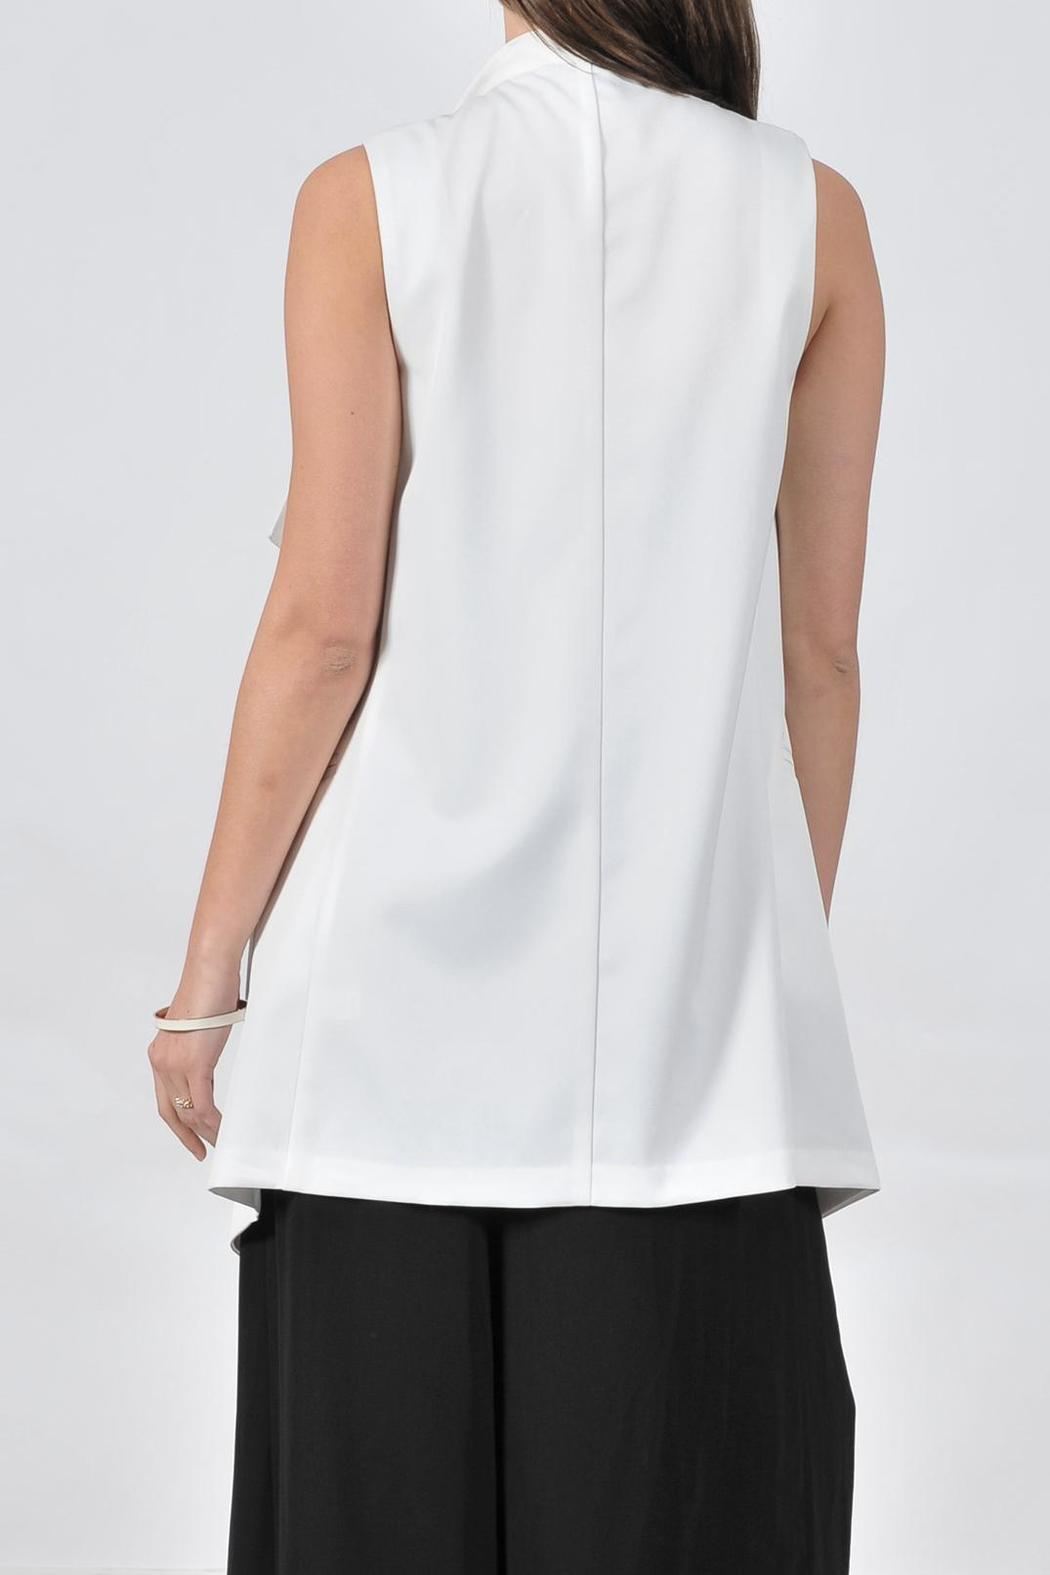 HYFVE Long White Vest - Front Full Image